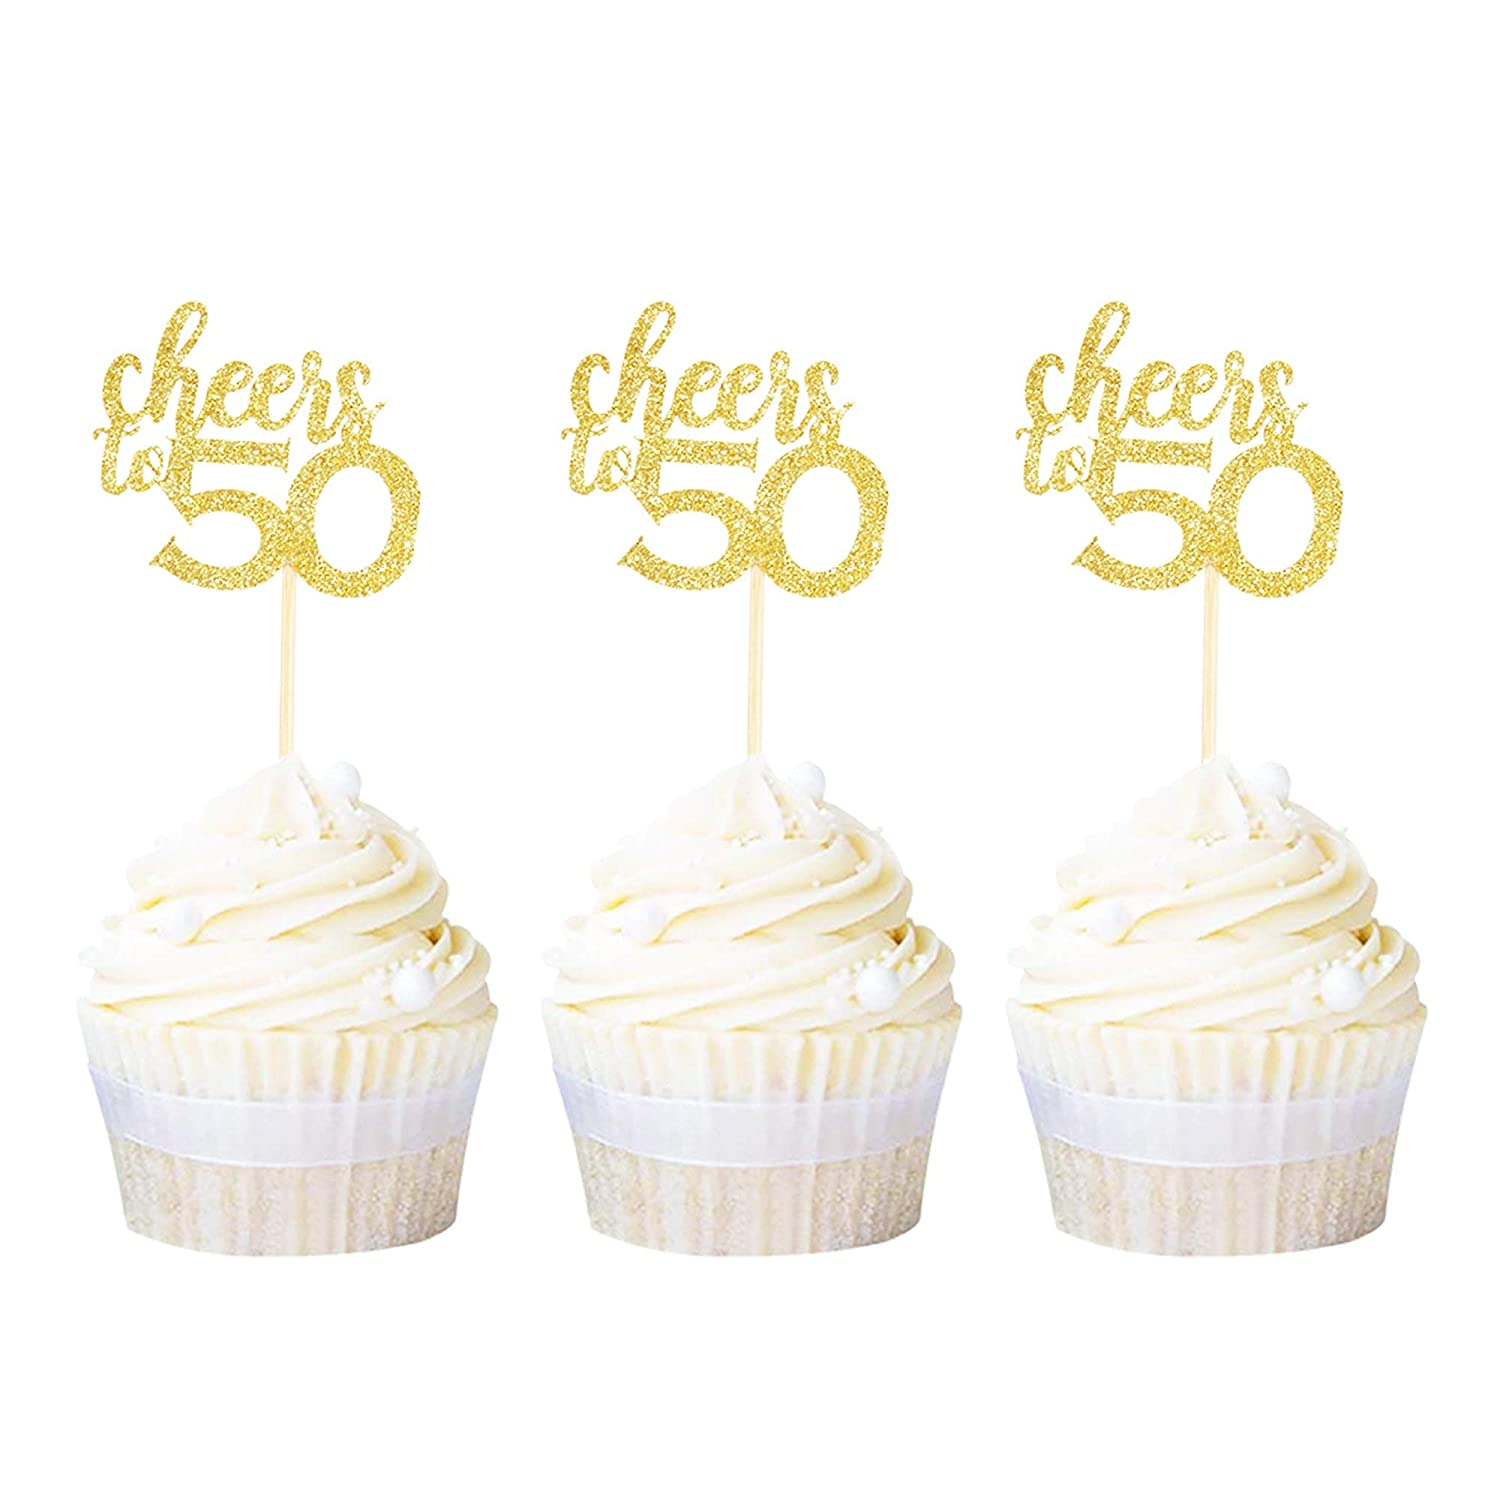 Ercadio 24 Pack Cheers to 50 Cupcake Toppers Gold Glitter Age Fifty 50th Birthday Cupcake Picks Anniversary Party Cake Decors